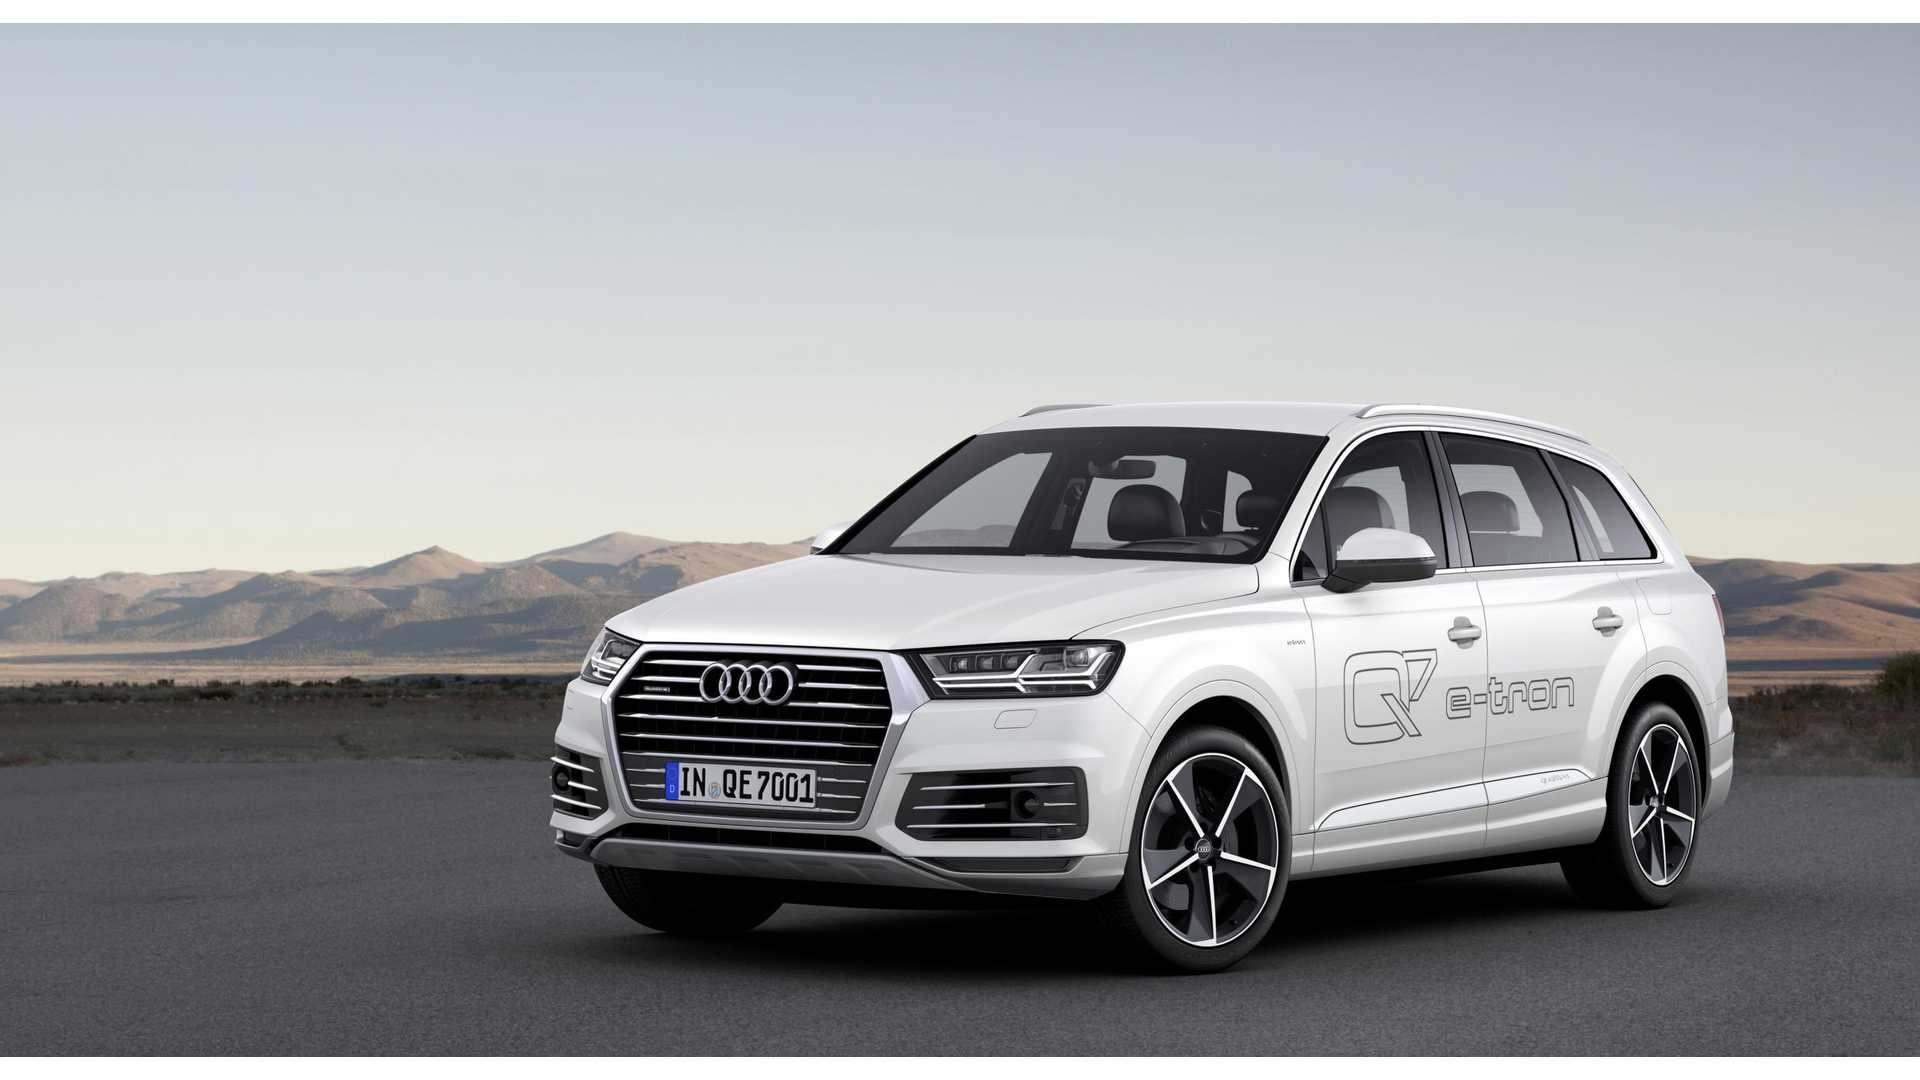 """Audi To Become More Like Tesla - """"More Agile, Faster And Taking More Risks"""""""